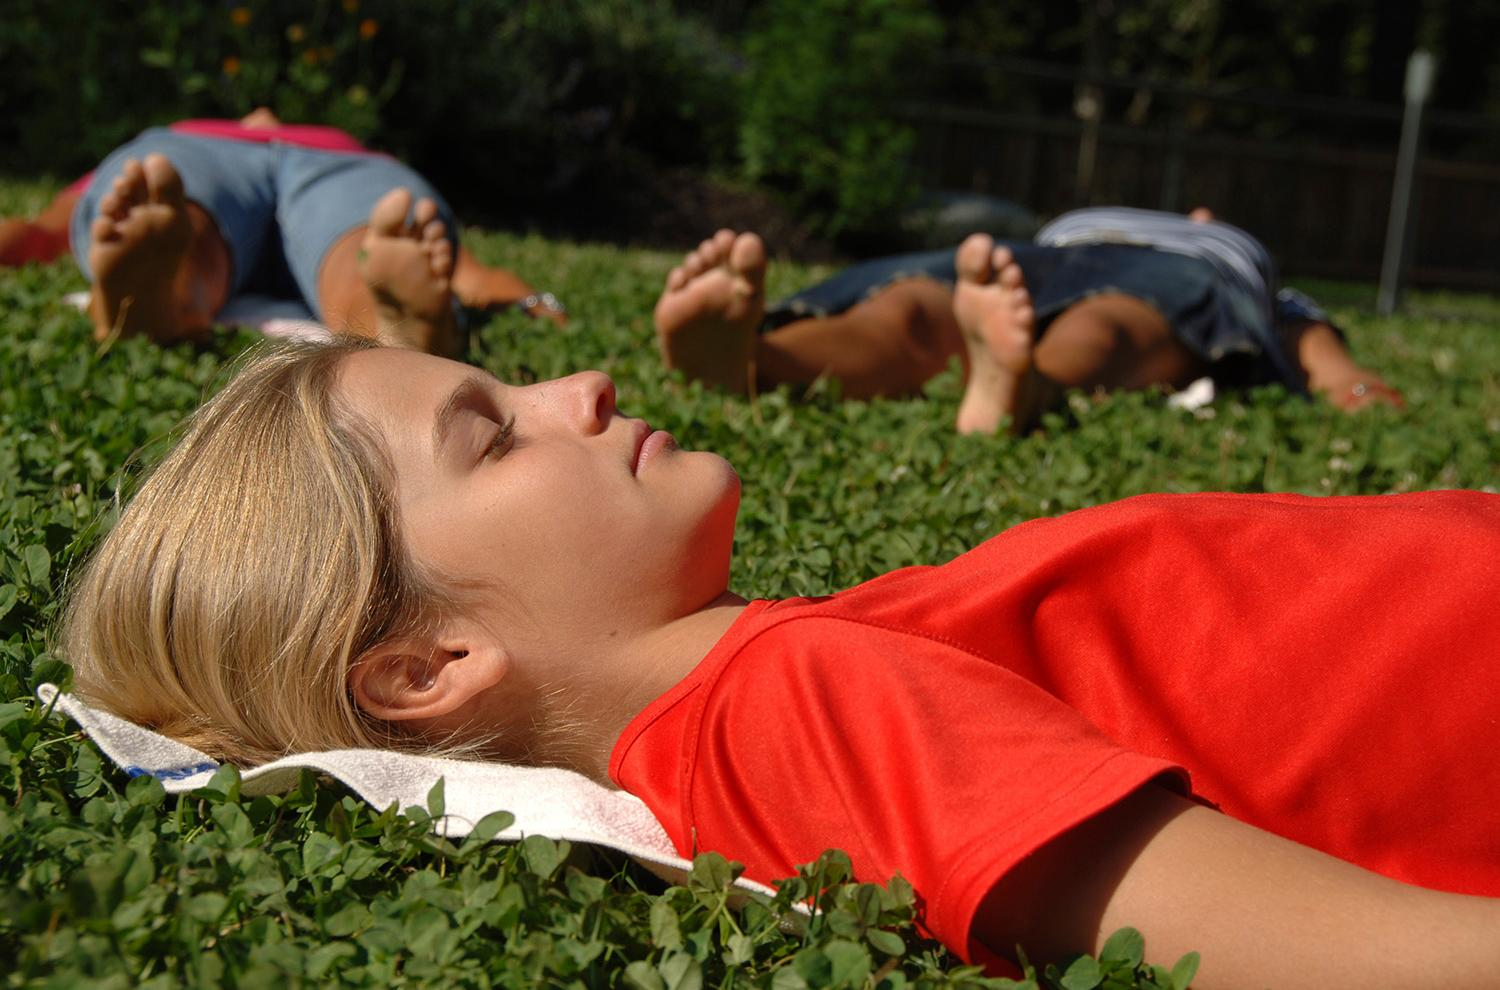 Relaxation exercises in nature